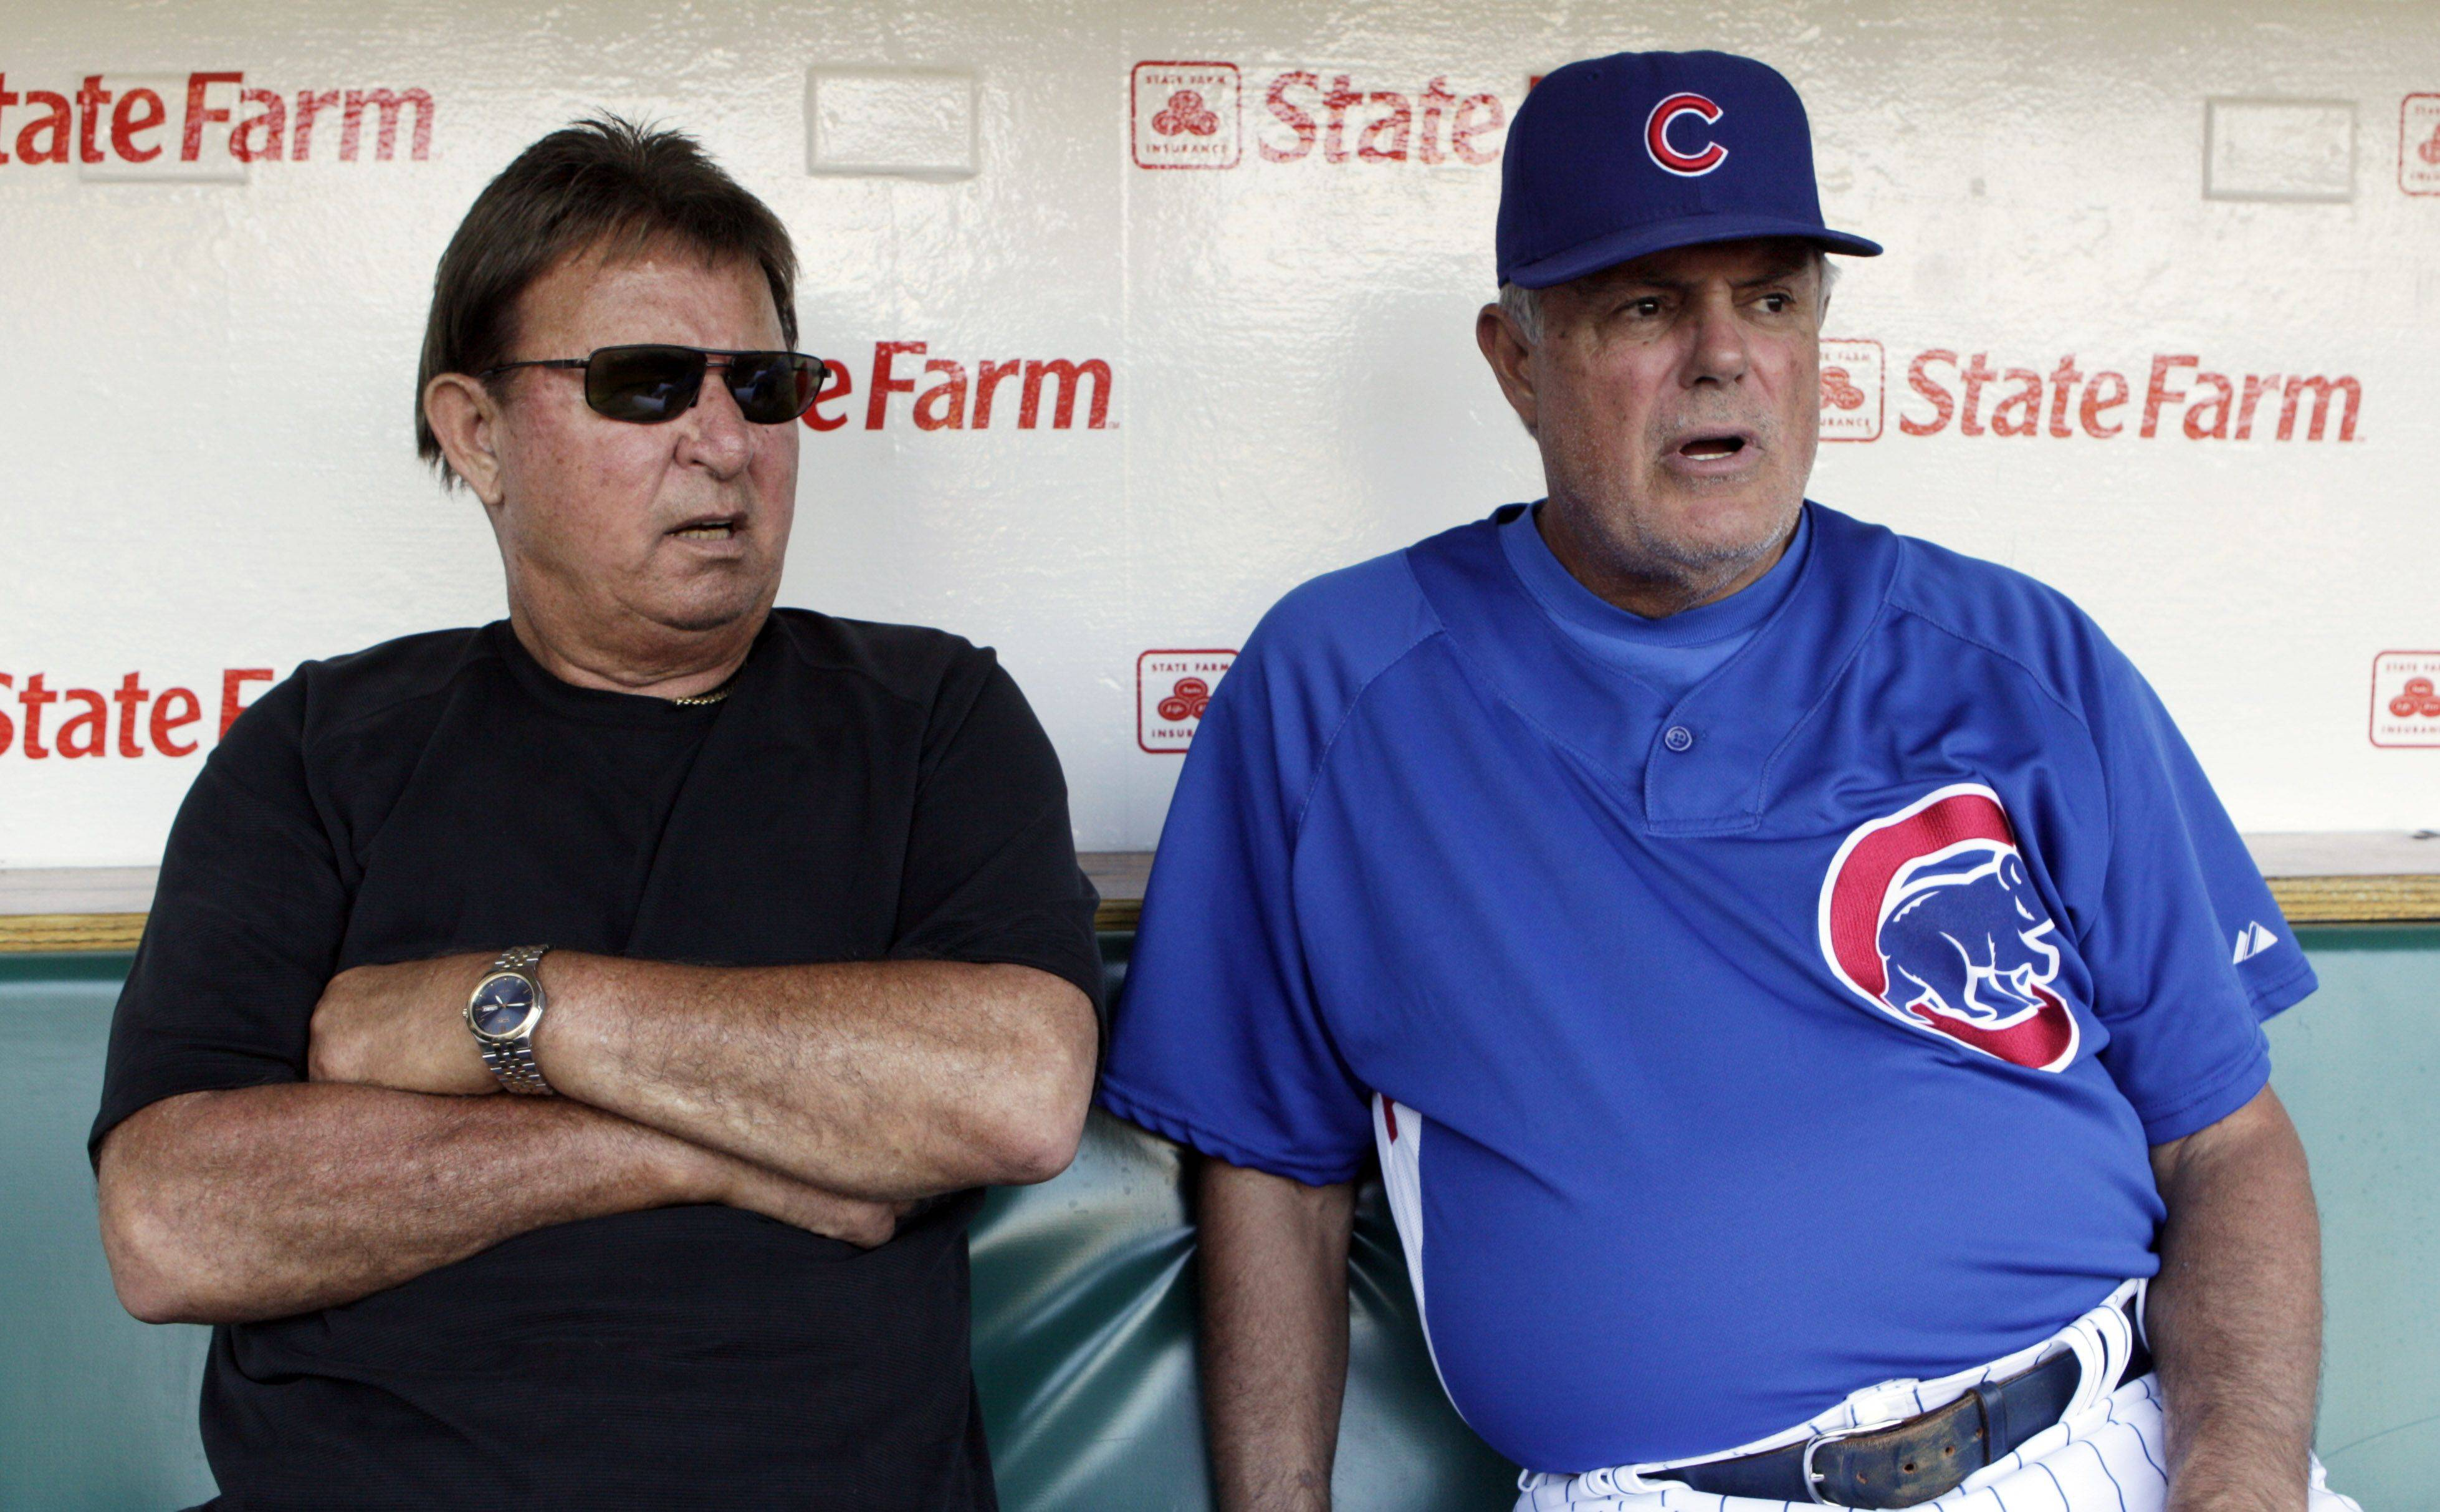 In this photograph taken on Aug. 12, 2009, Chicago Cubs radio broadcaster Ron Santo, left, sits in the dugout with Cubs manager Lou Pinella before a baseball game at Wrigley Field in Chicago. The 69-year-old Santo, who joined the team as a 20-year-old rookie in 1960, is in his 20th year as a broadcaster and still rooting for the team he has never seen play in the World Series.